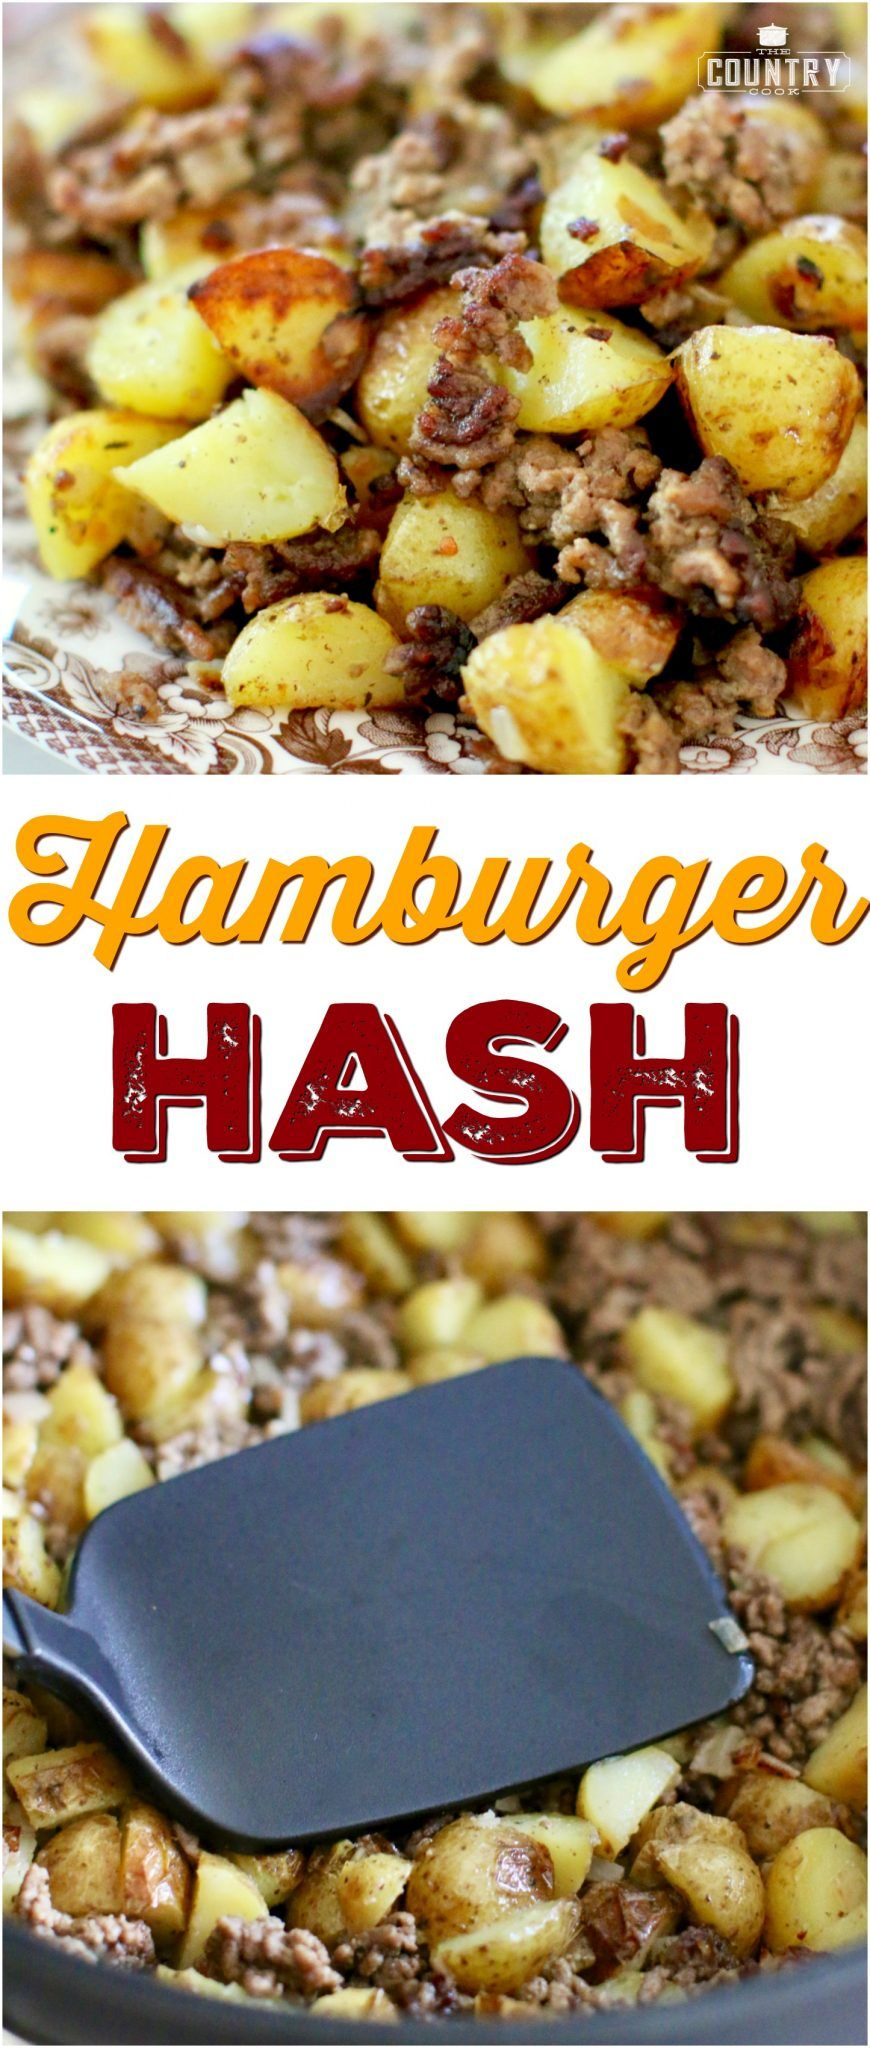 Old School Hamburger Hash The Country Cook Recipe Healthy Hamburger Meat Recipes Easy Meat Recipes Hamburger Meat Recipes Easy